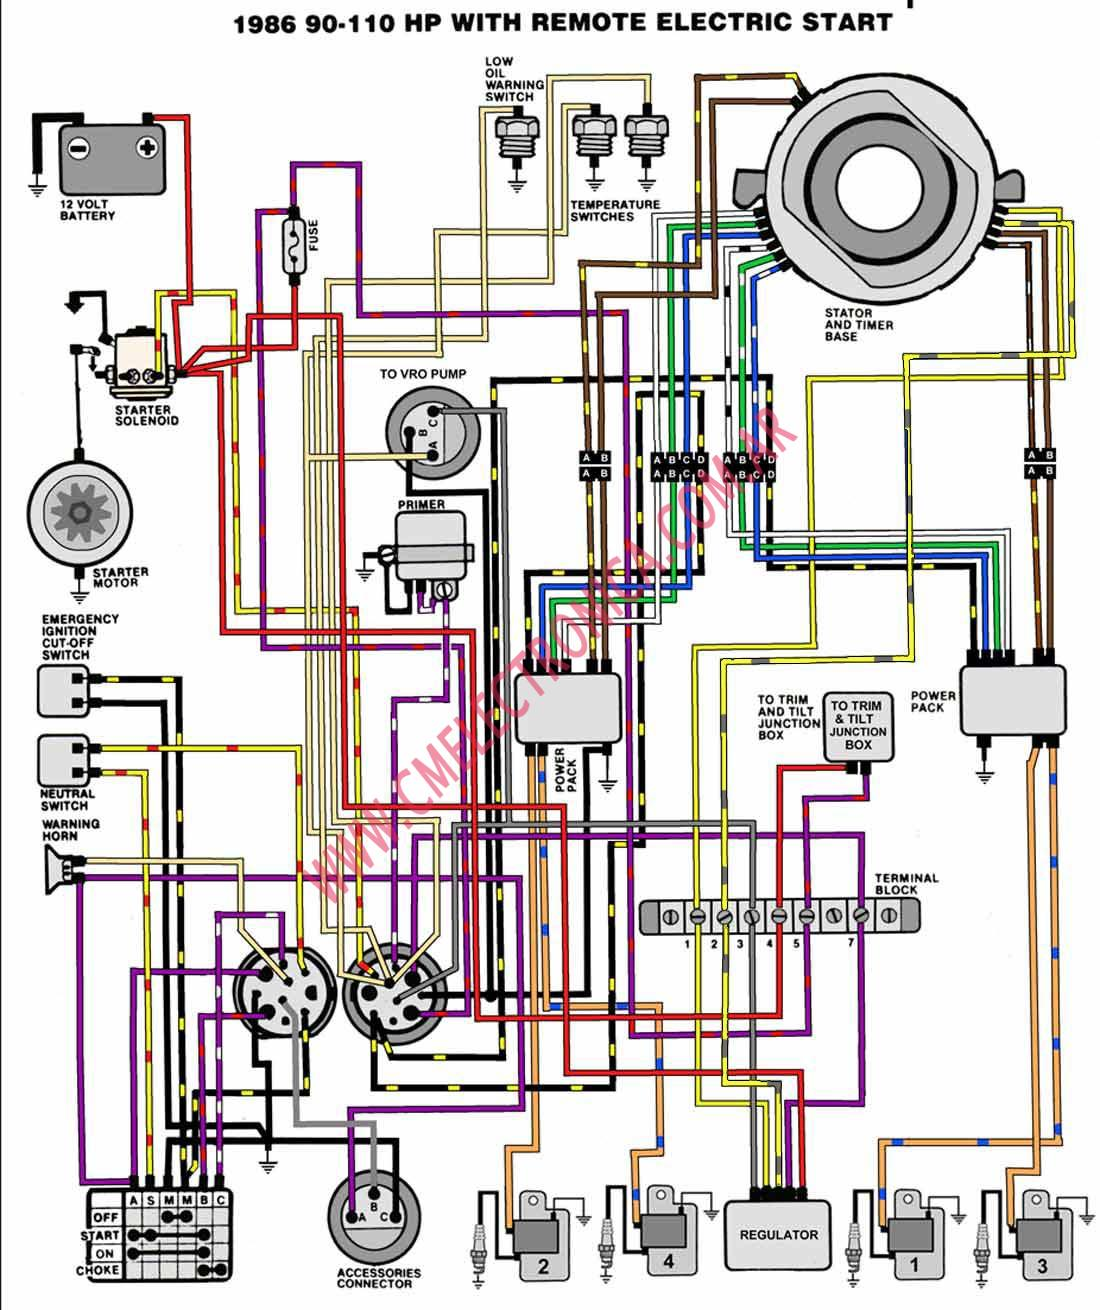 mercury outboard wiring diagram images wiring engine ignition 115 mercury outboard wiring diagram images wiring engine ignition system diagram furthermore 115 mercury 4 stroke outboard parts hp evinrude wiring